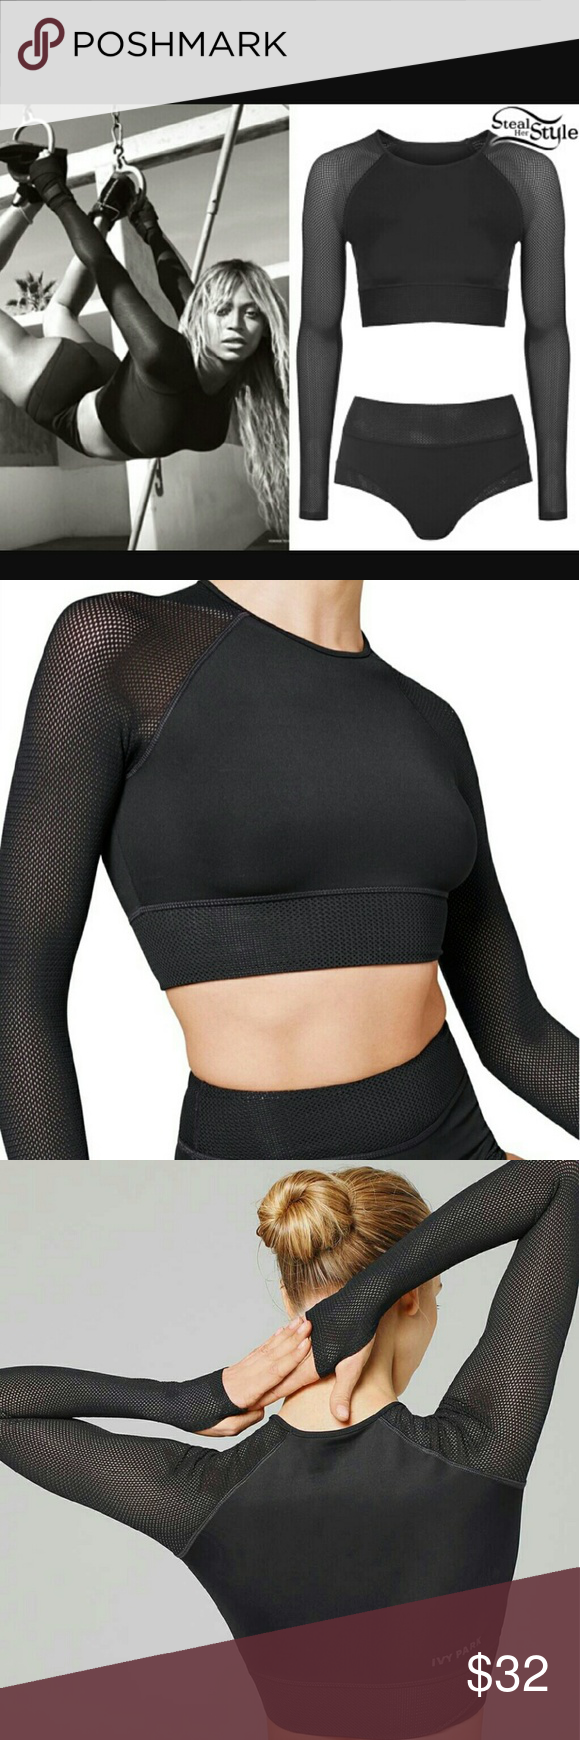 b16a4b2be482ab  host pick  Ivy Park Mesh Crop Top Last chance to buy!! As pictured on  Beyonce